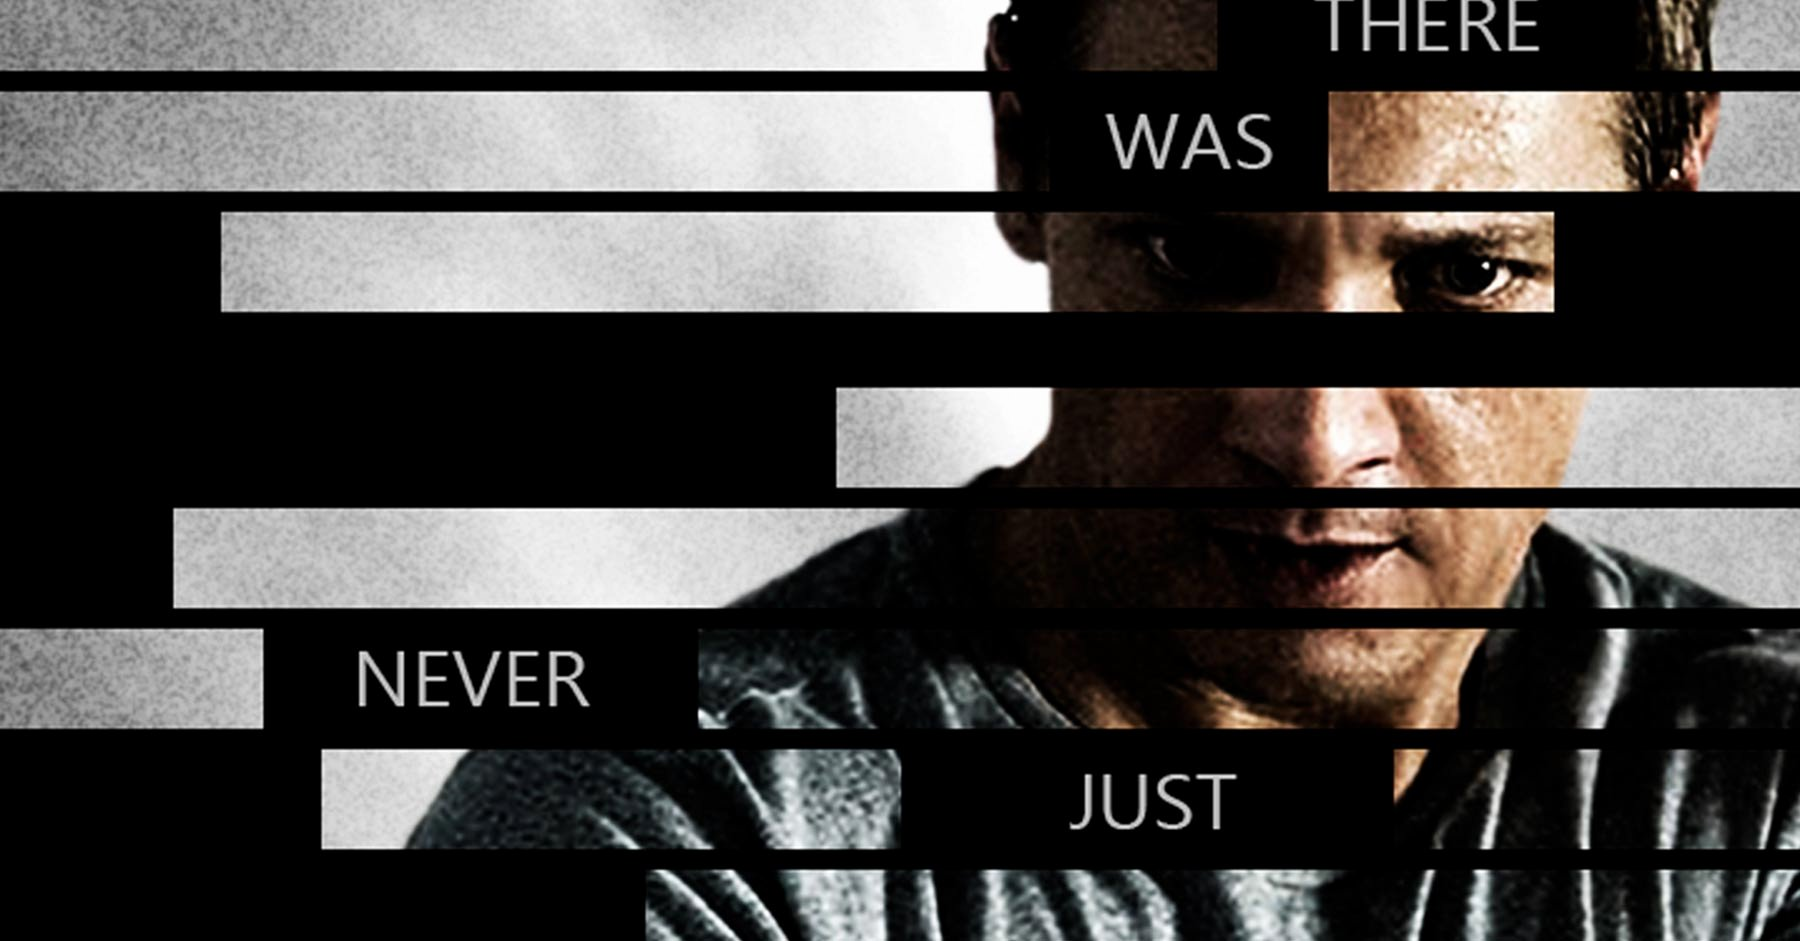 Movie Poster Template Photoshop Awesome Bourne Legacy Movie Poster Tutorial Shop Tutorial